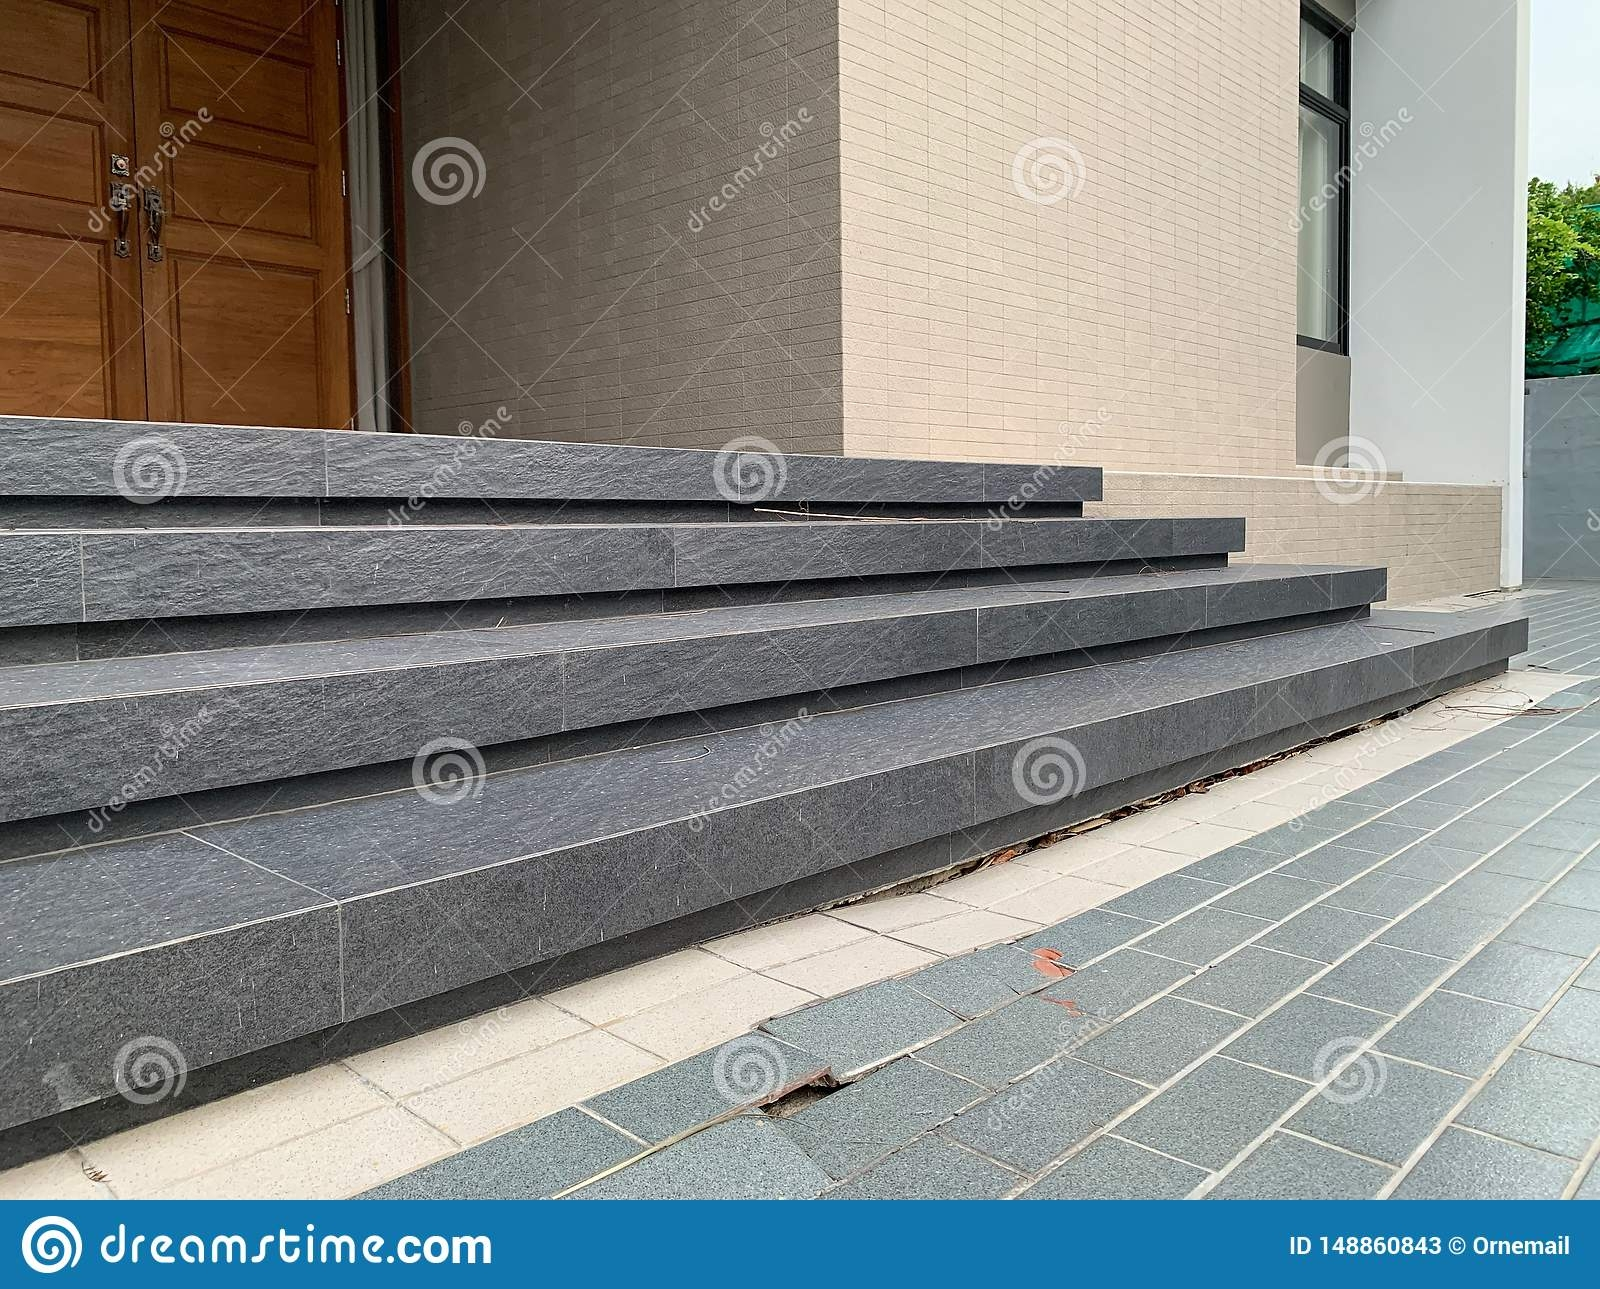 The Stairs In Front Of The House Collapsed Cracked Tiles Home   Home Front Stairs Design   Porch Attached Horizontal Staircase Tower   Parapet Wall   Sitout Step   Front Window   Interior